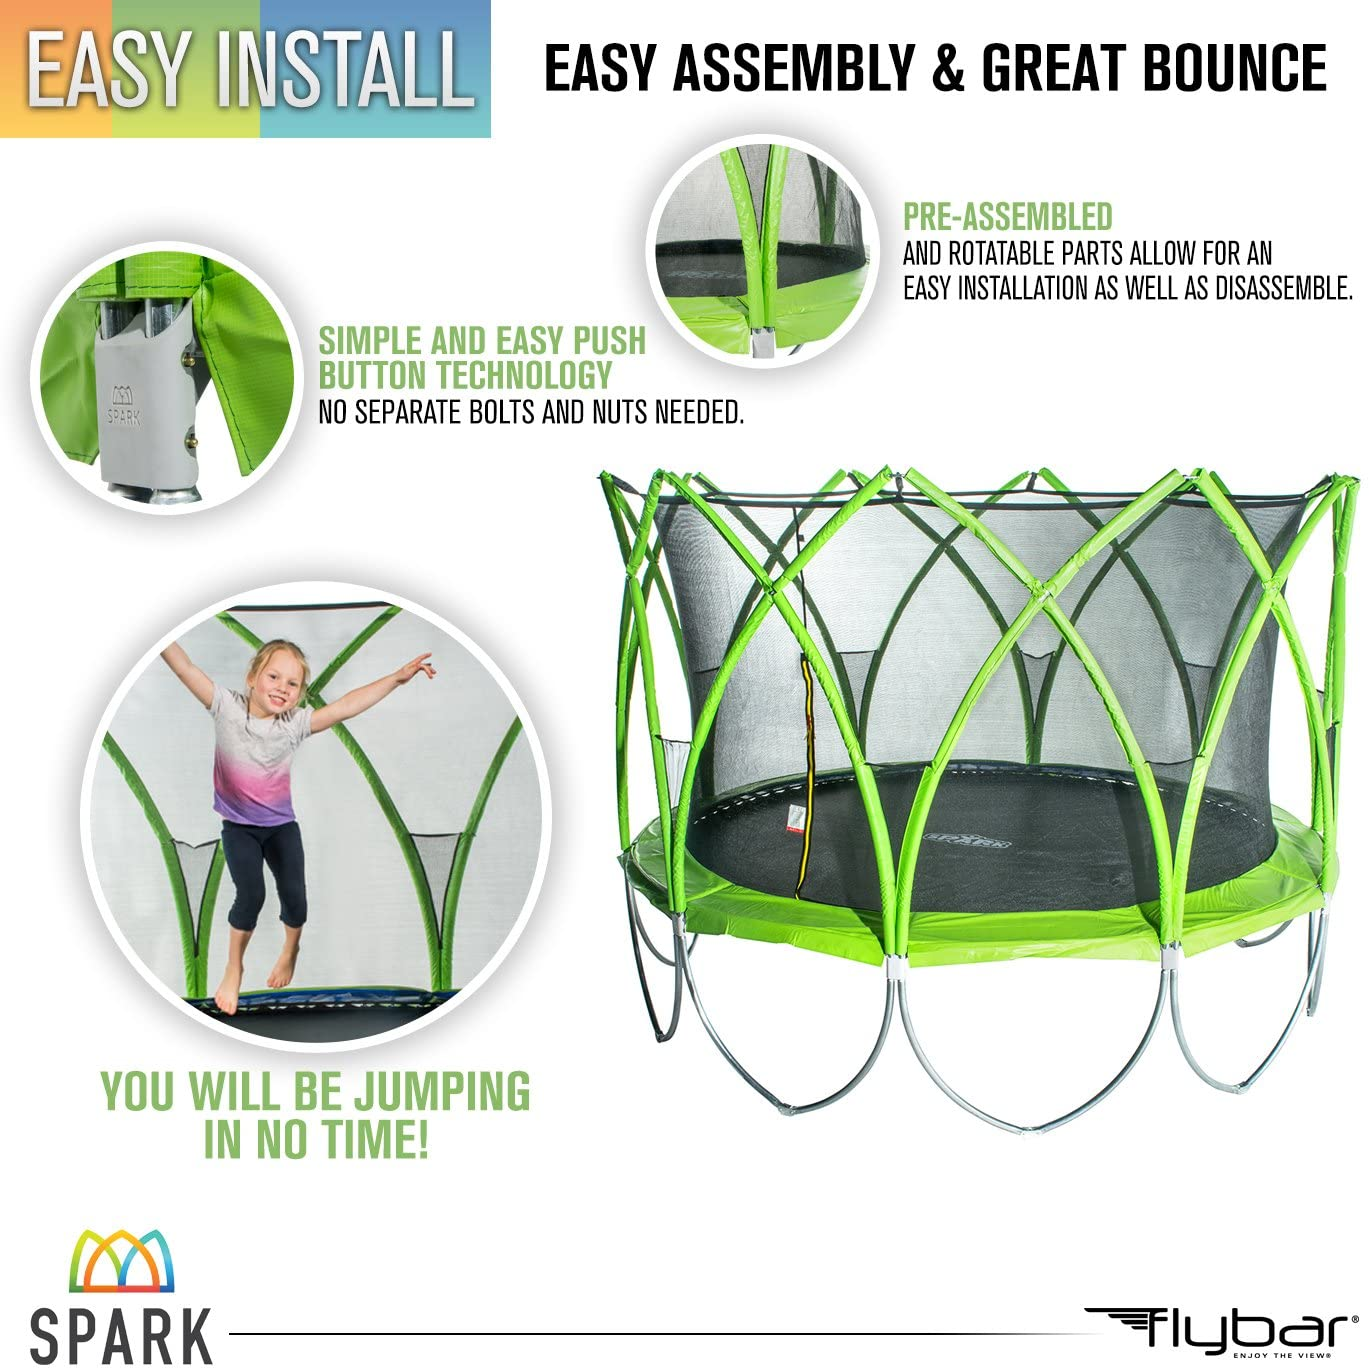 Spark Trampolines with Padded Safety Enclosure Net & Available Add-Ons to Become a Full Playground (8, 10, 12, 14 Foot Options)